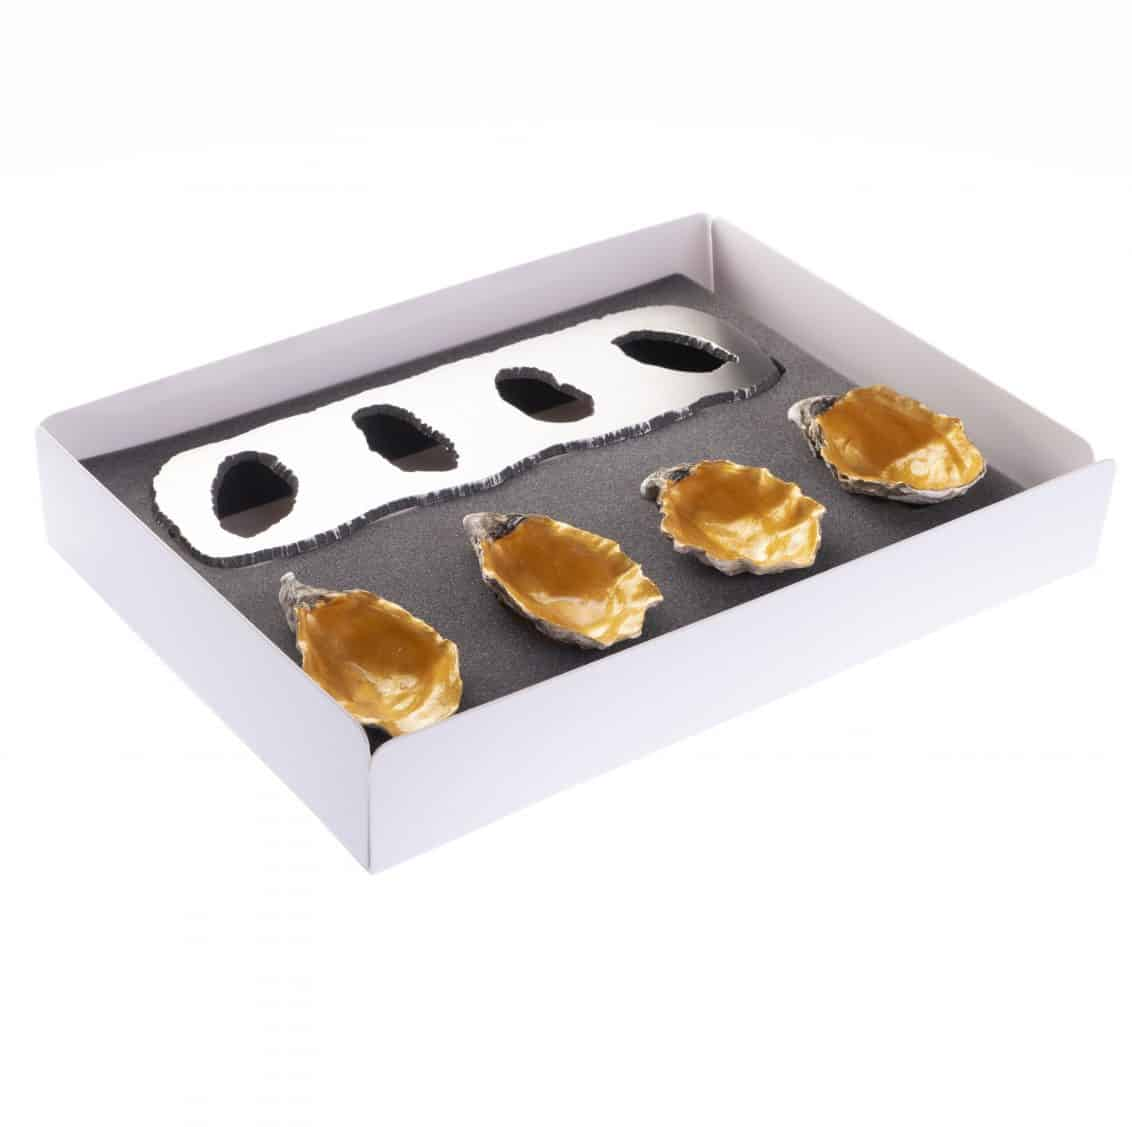 CD-Store-gold-lacquered-oyster-shell-and-support-1132x1127